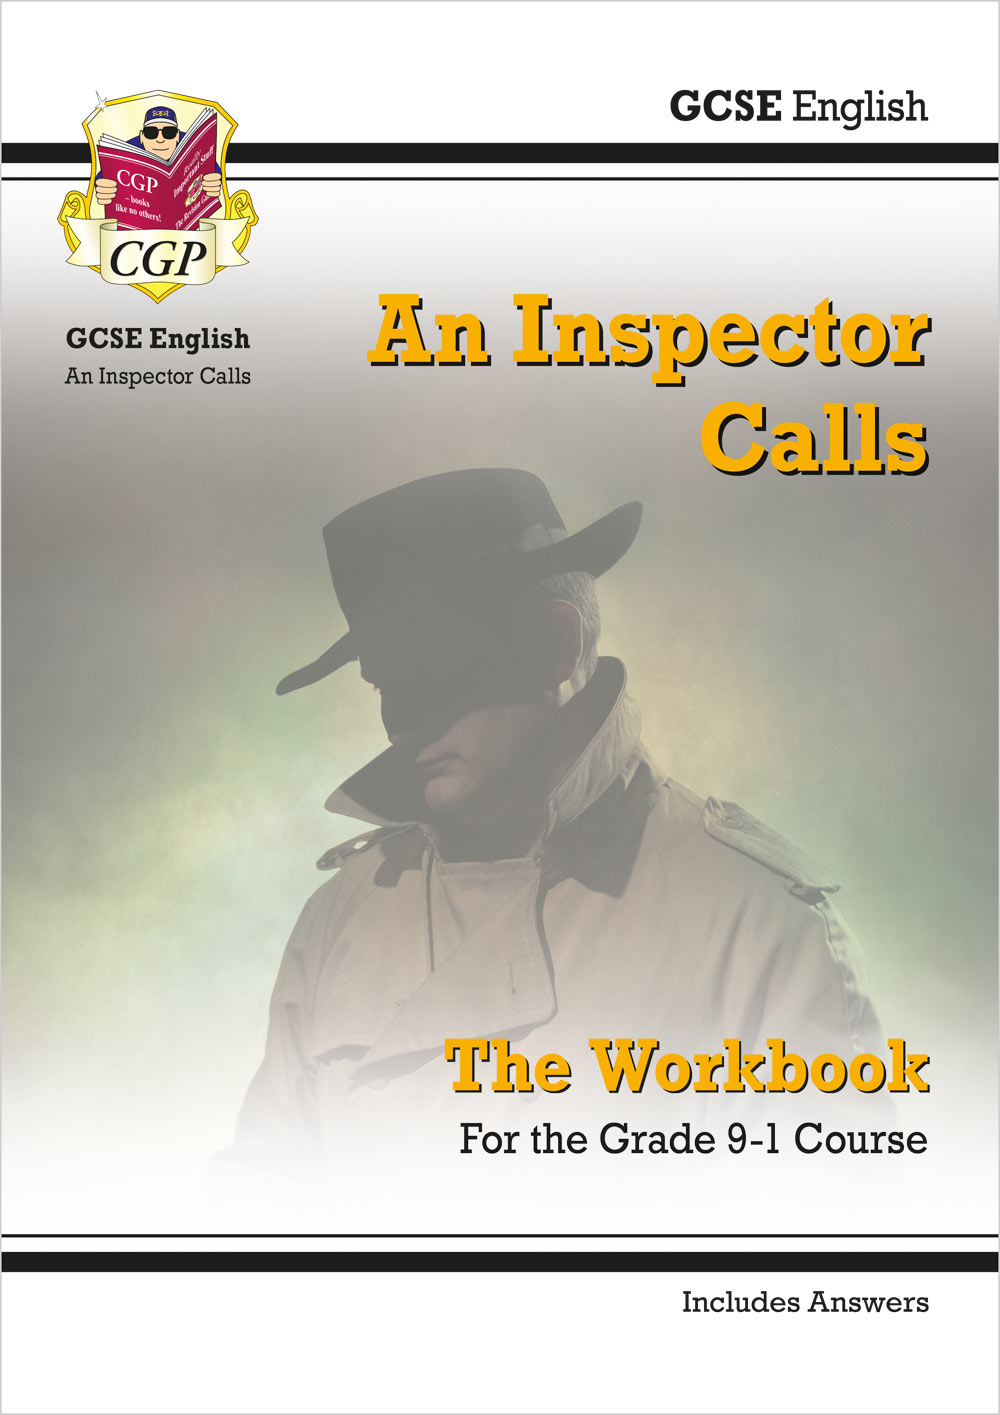 ETWI41 - Grade 9-1 GCSE English - An Inspector Calls Workbook (includes Answers)